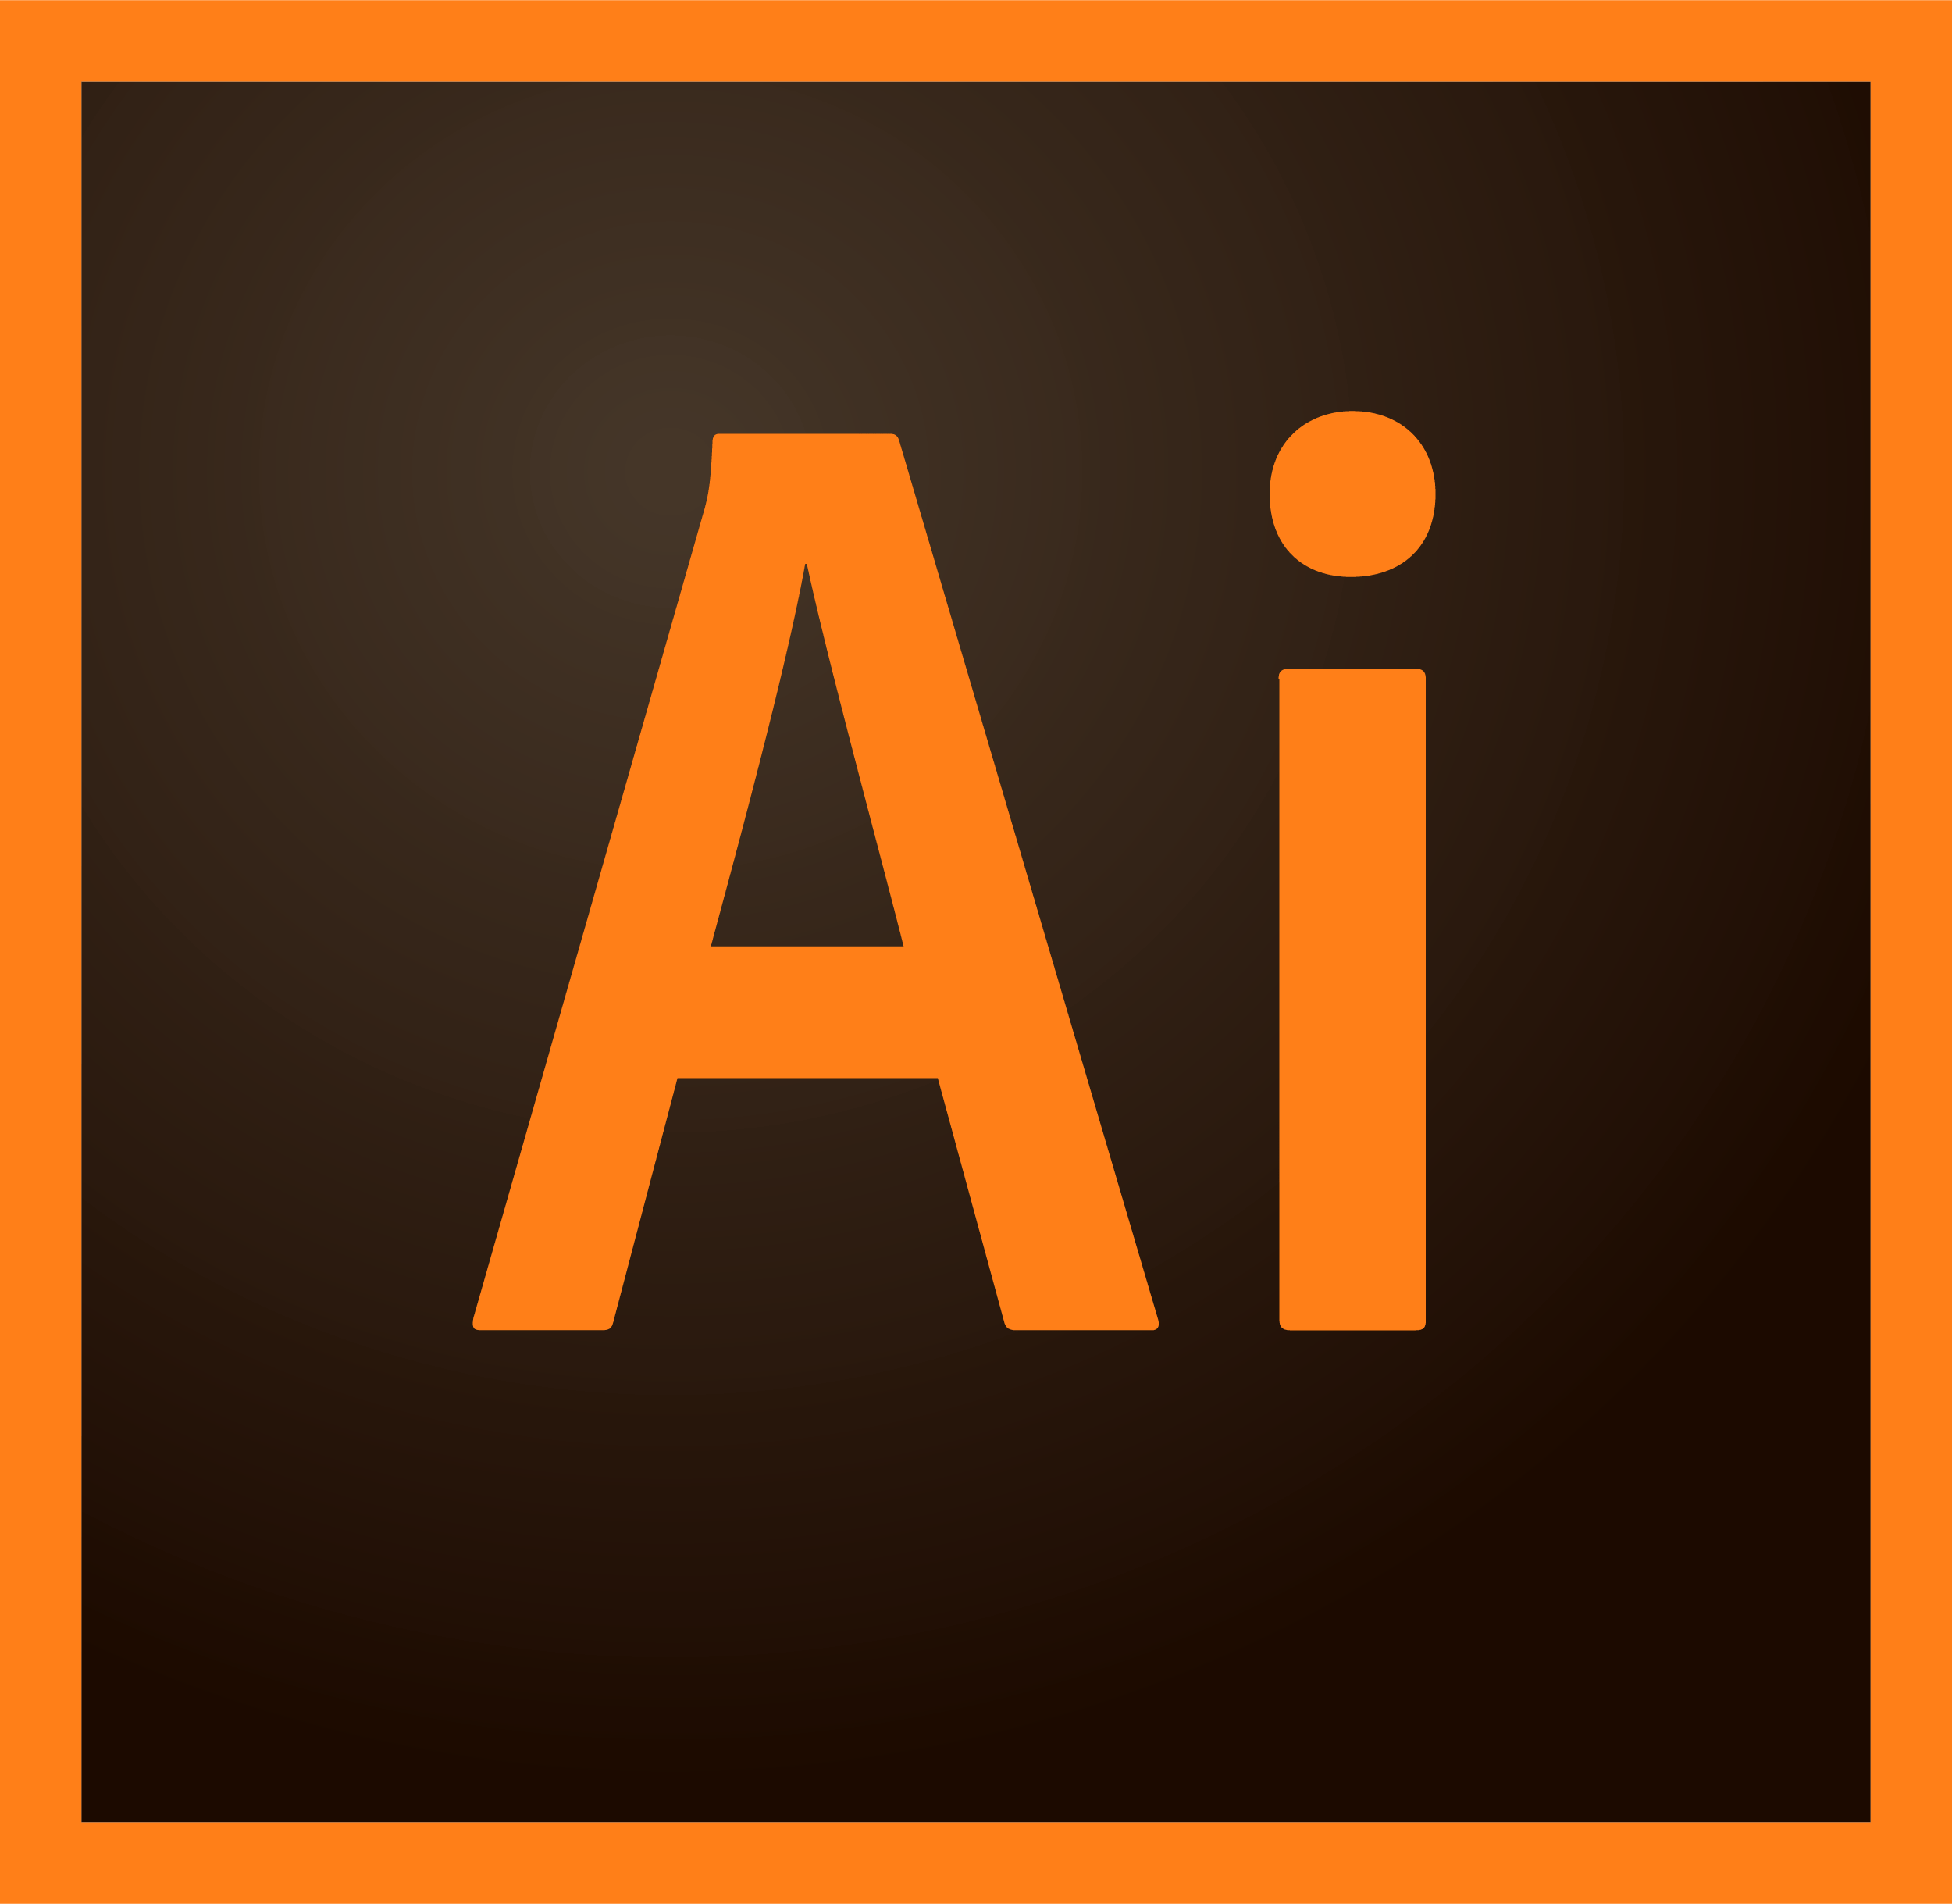 adobe illustrator cc full version free